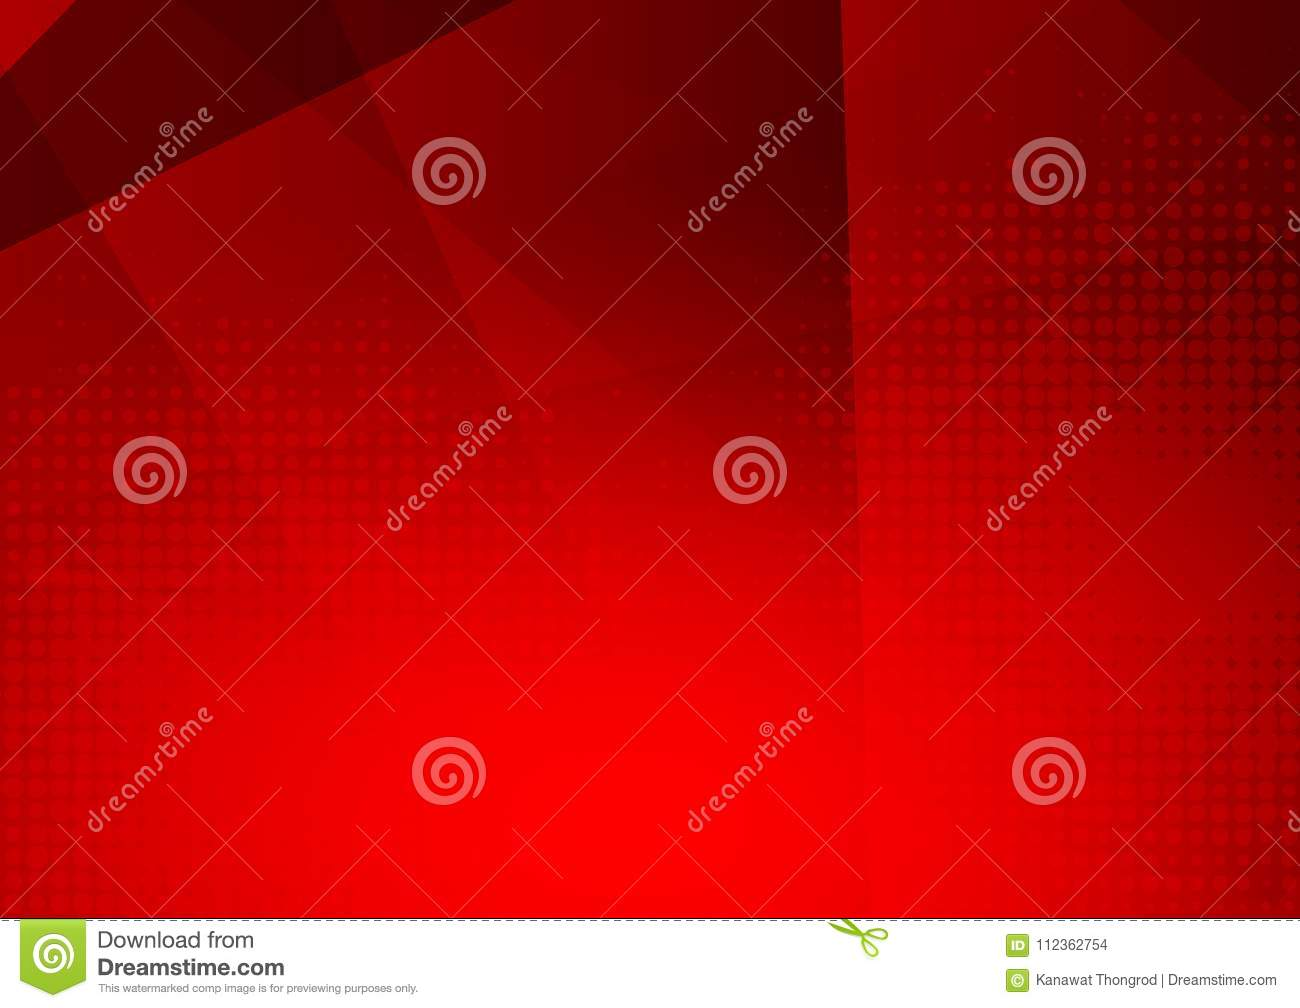 Red modern futuristic geometric abstract vector background with copy space, modern design